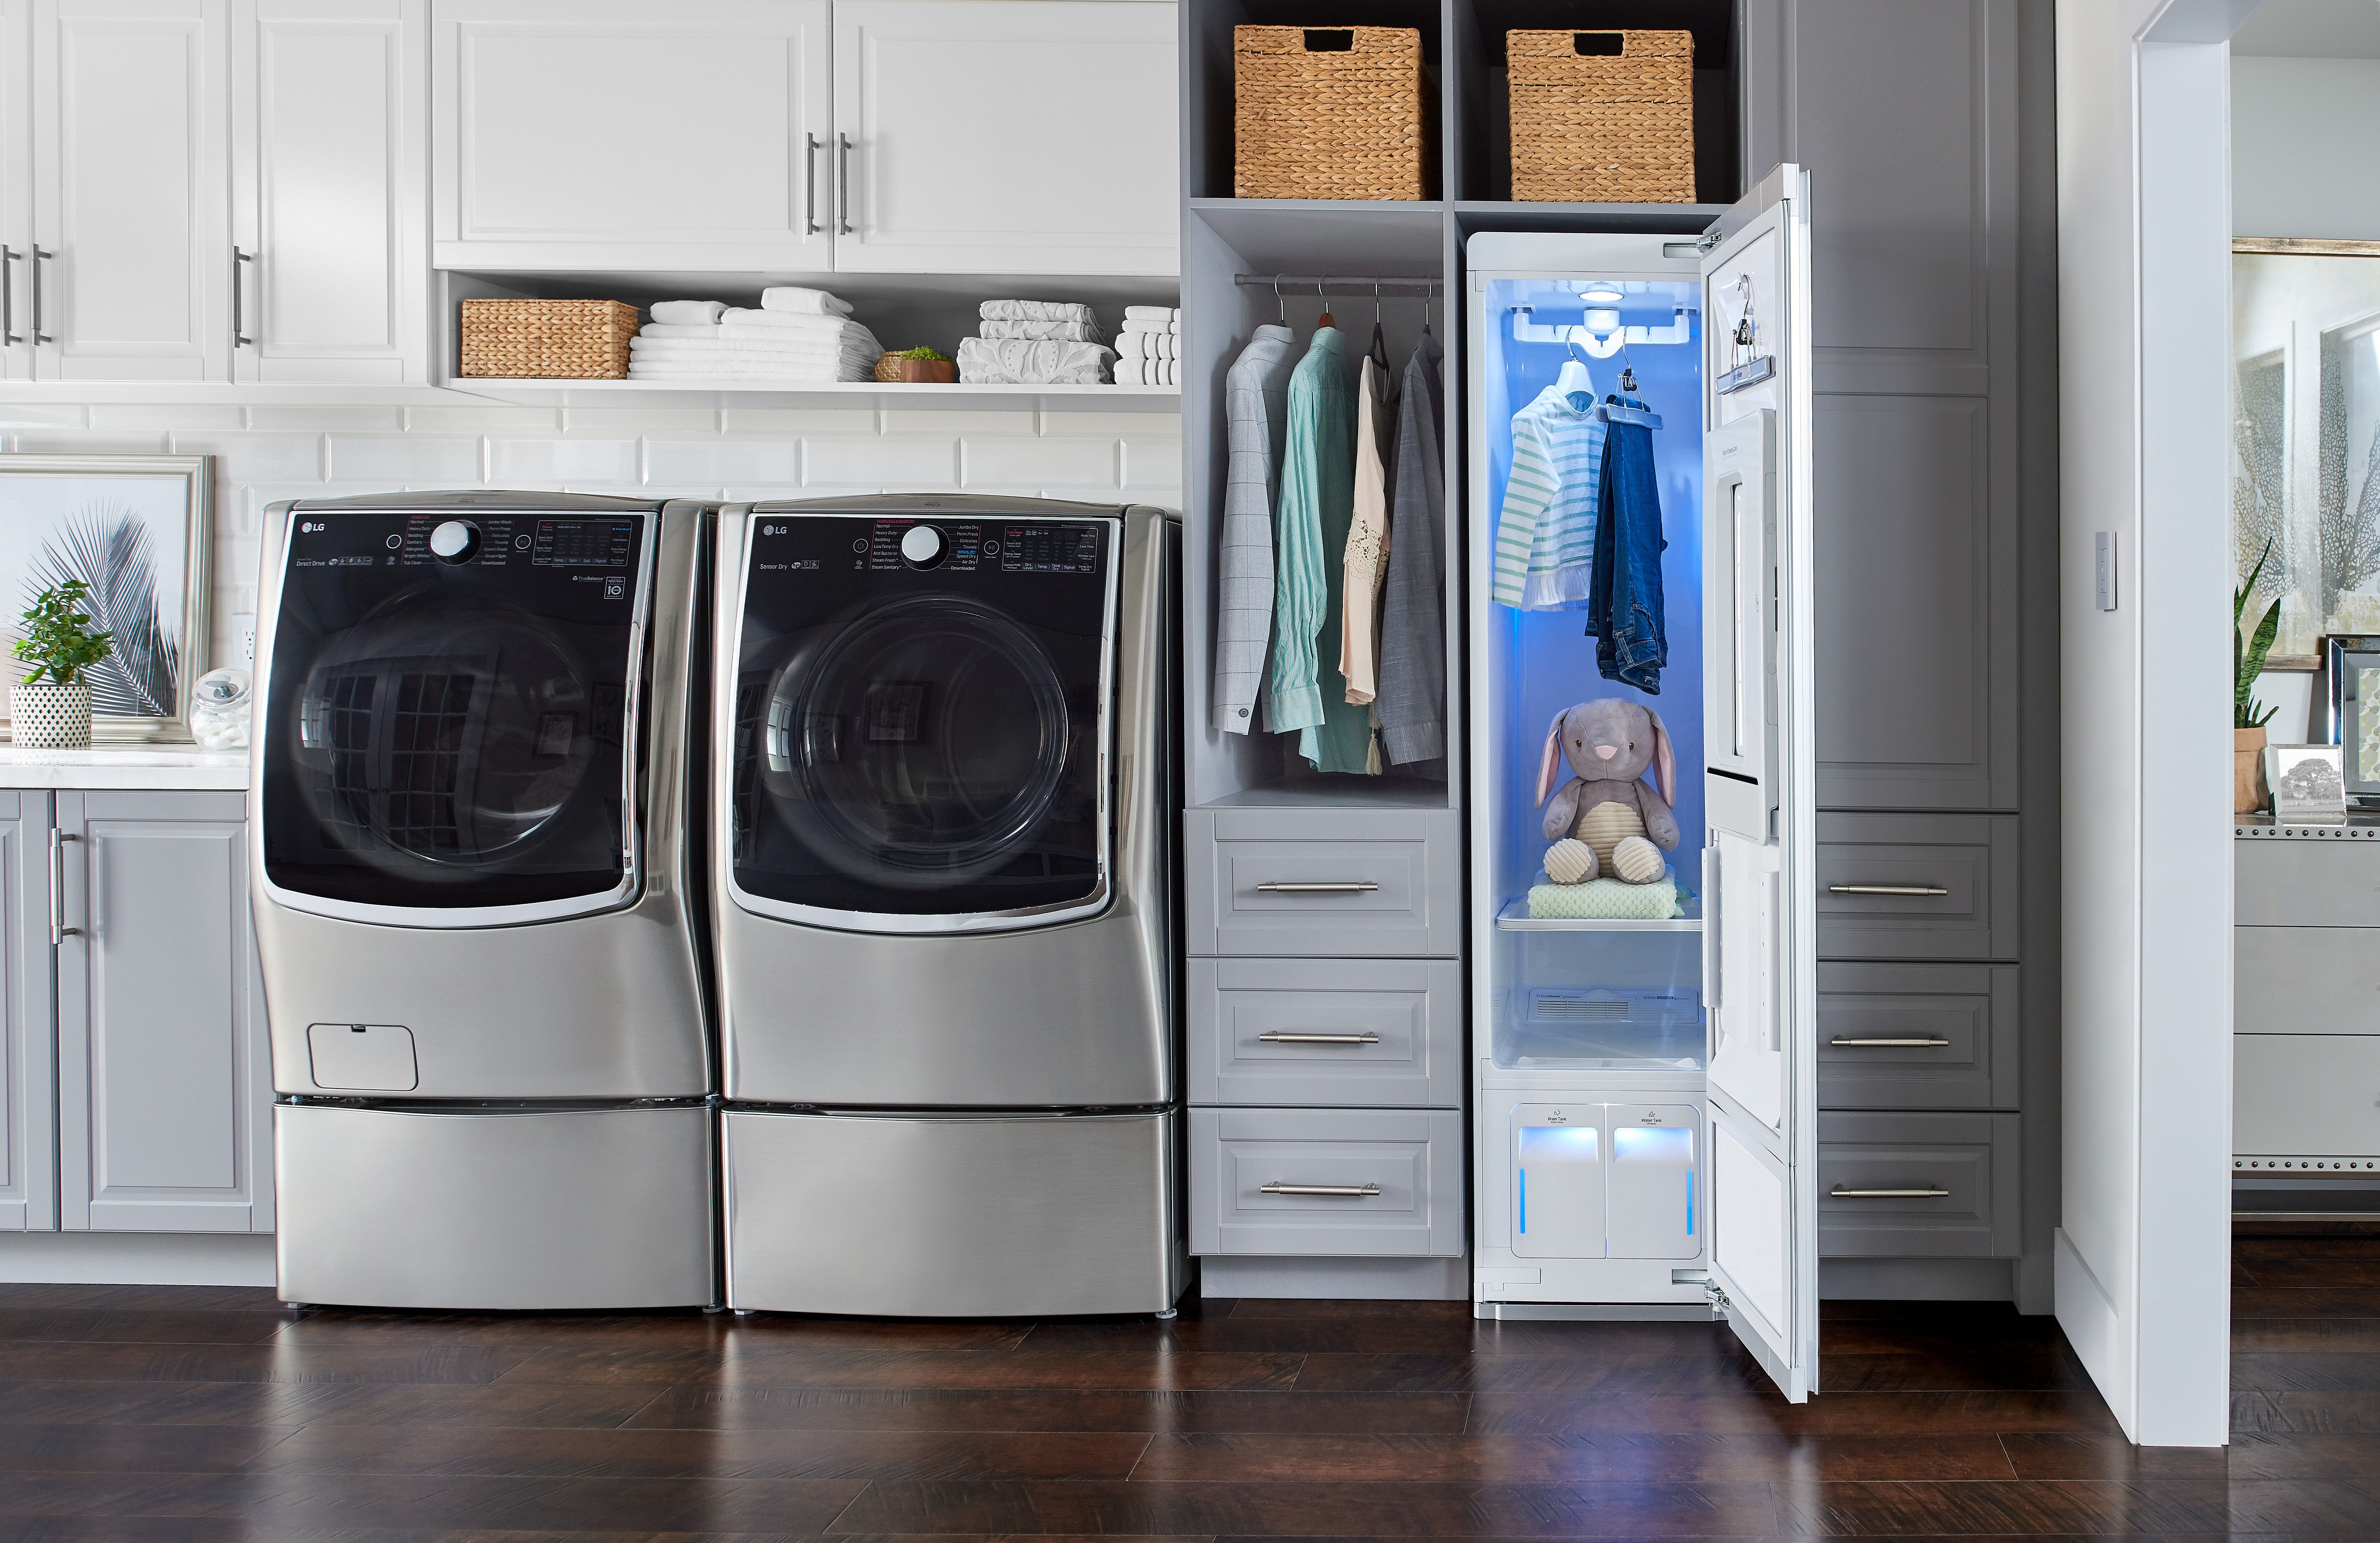 15 clever laundry room ideas how to organize a laundry room